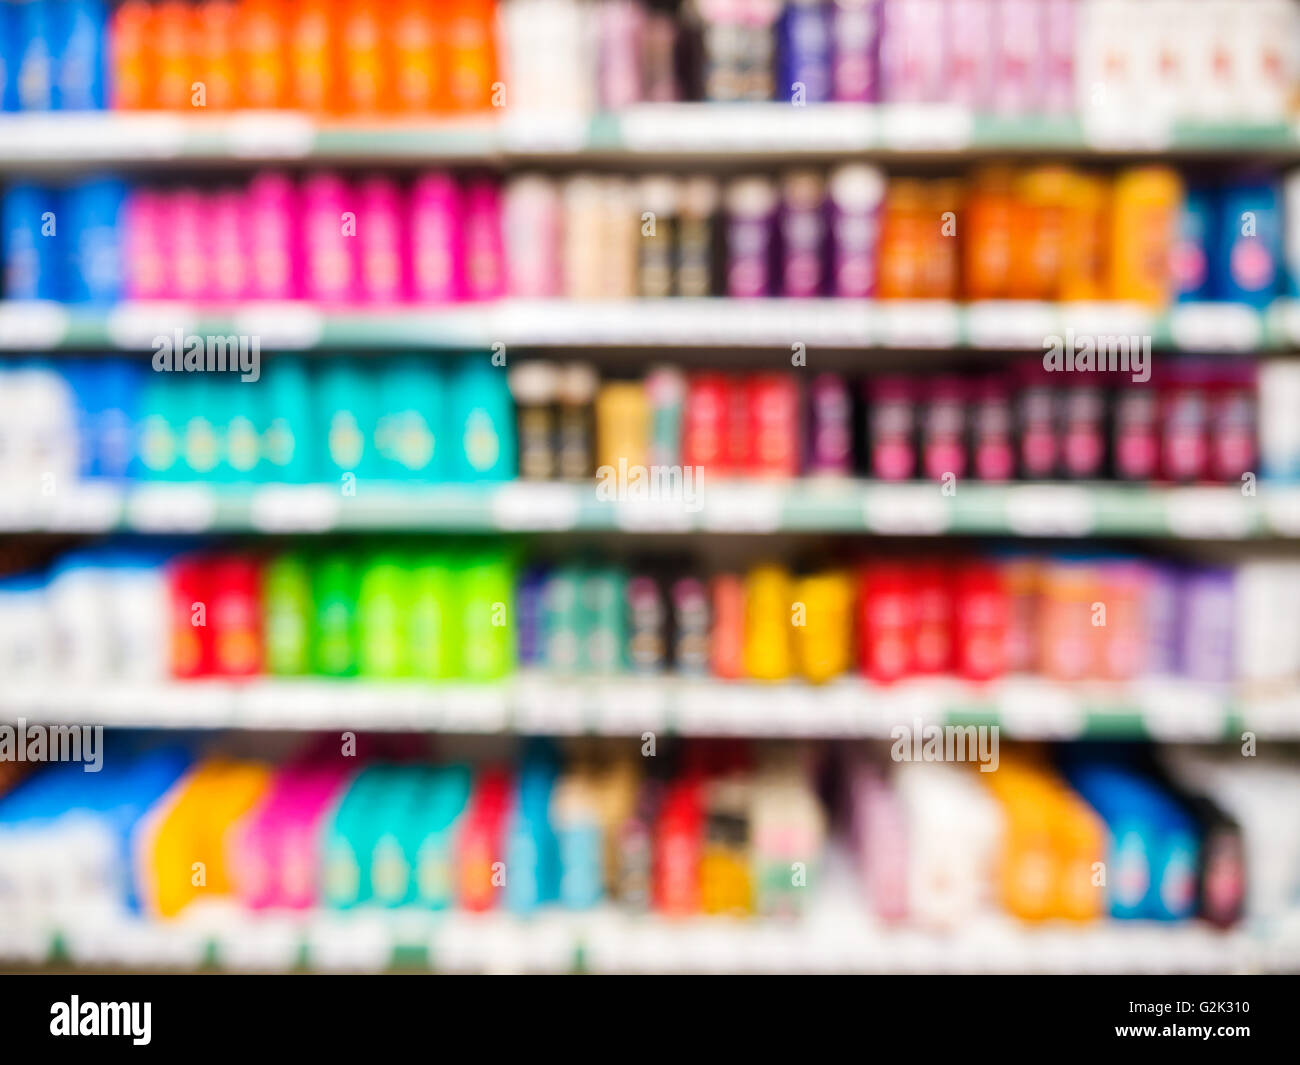 Blurred Colorful Supermarket Products On Shelves - Shampoo